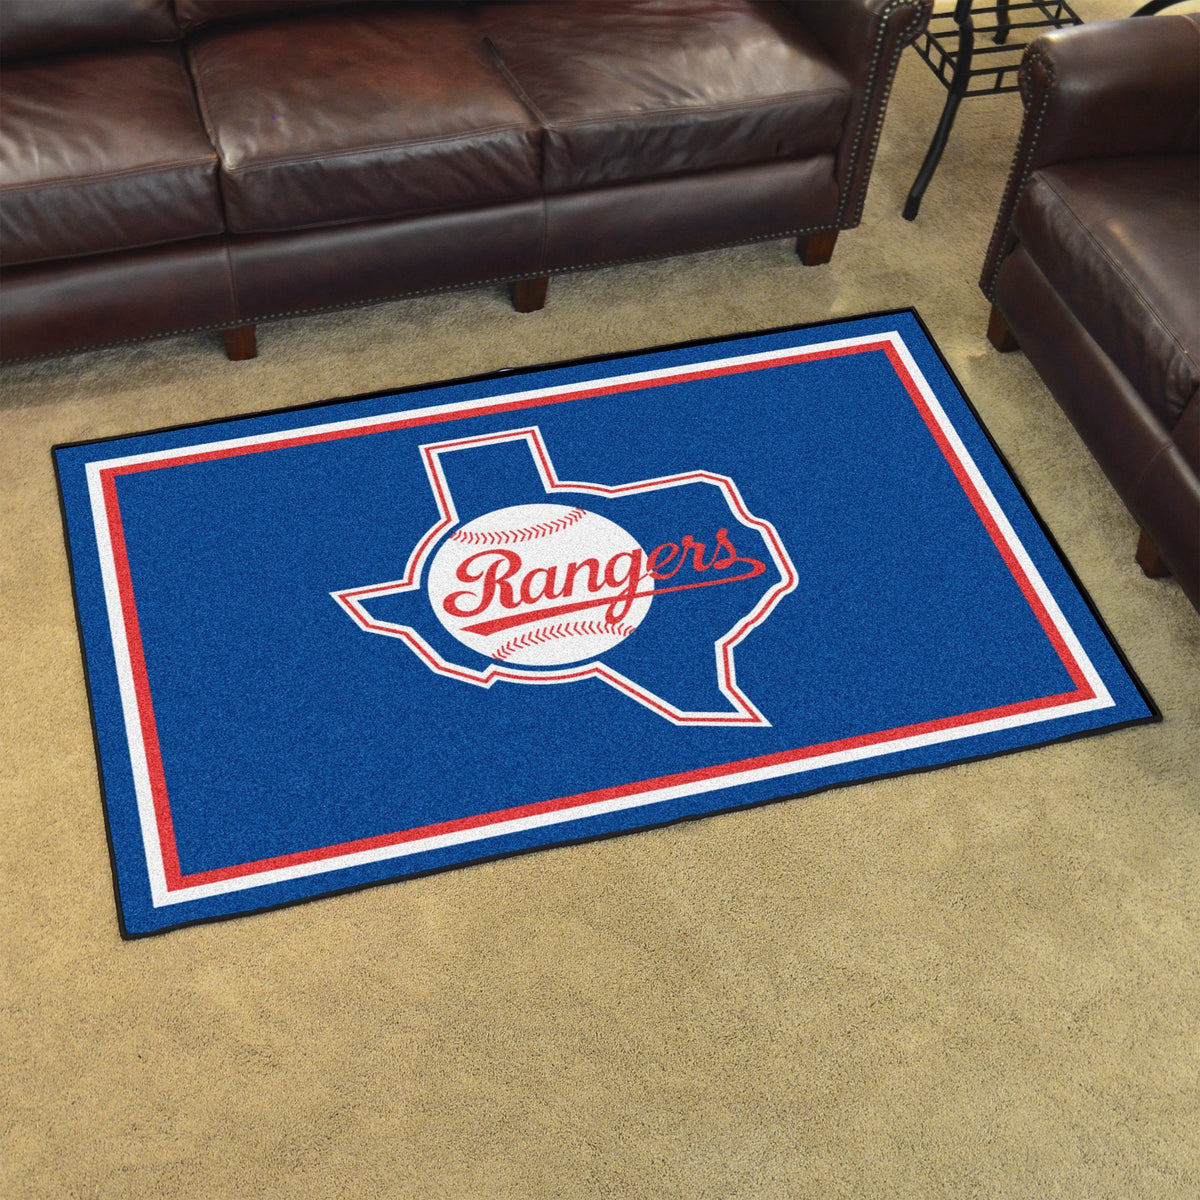 MLB Retro - 4' x 6' Rug MLB Retro Mats, Plush Rugs, 4x6 Rug, MLB, Home Fan Mats Texas Rangers 2